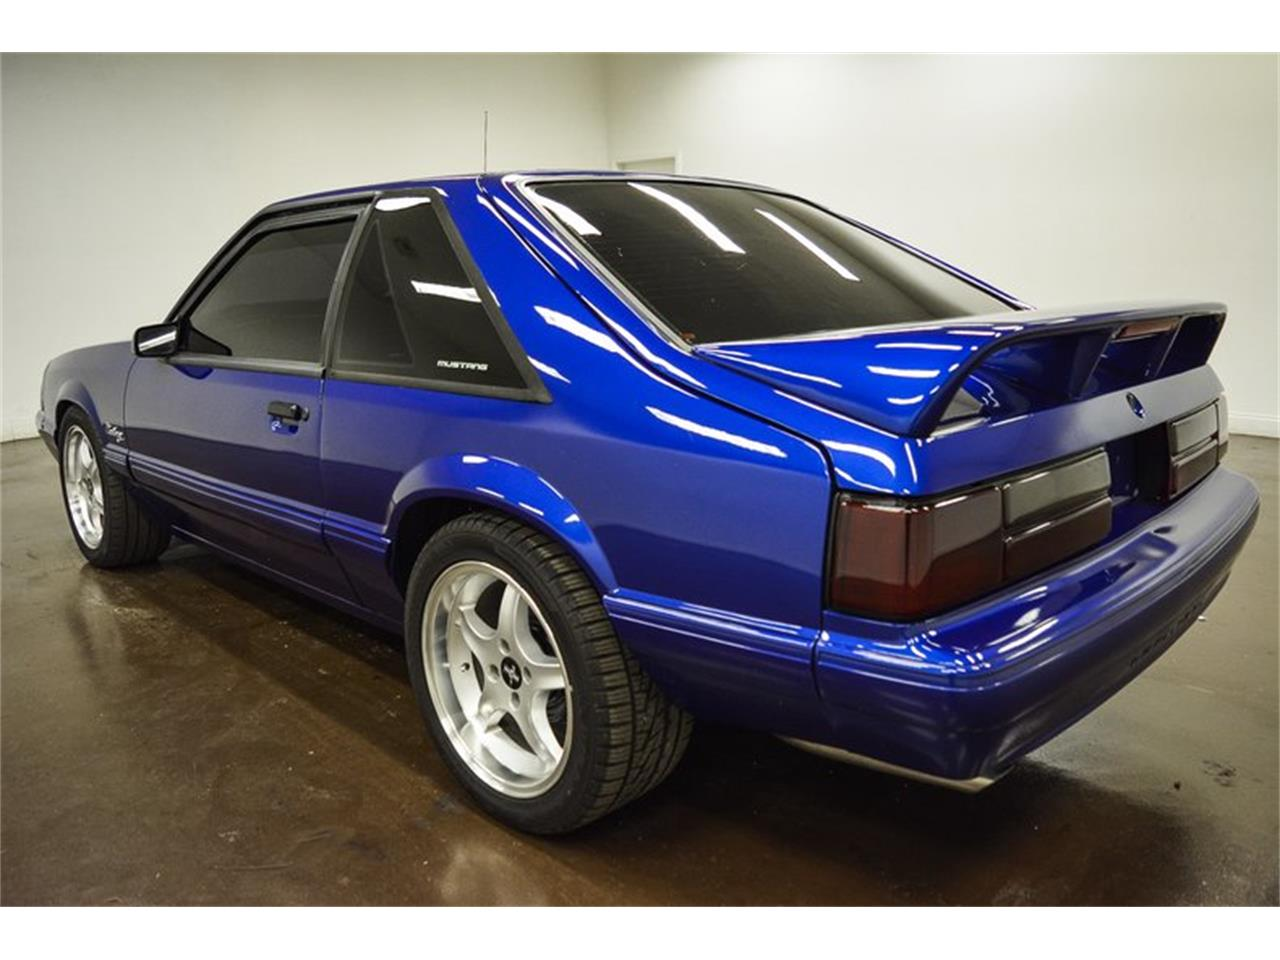 Large Picture of 1991 Mustang located in Texas - $14,999.00 Offered by Classic Car Liquidators - PNVK